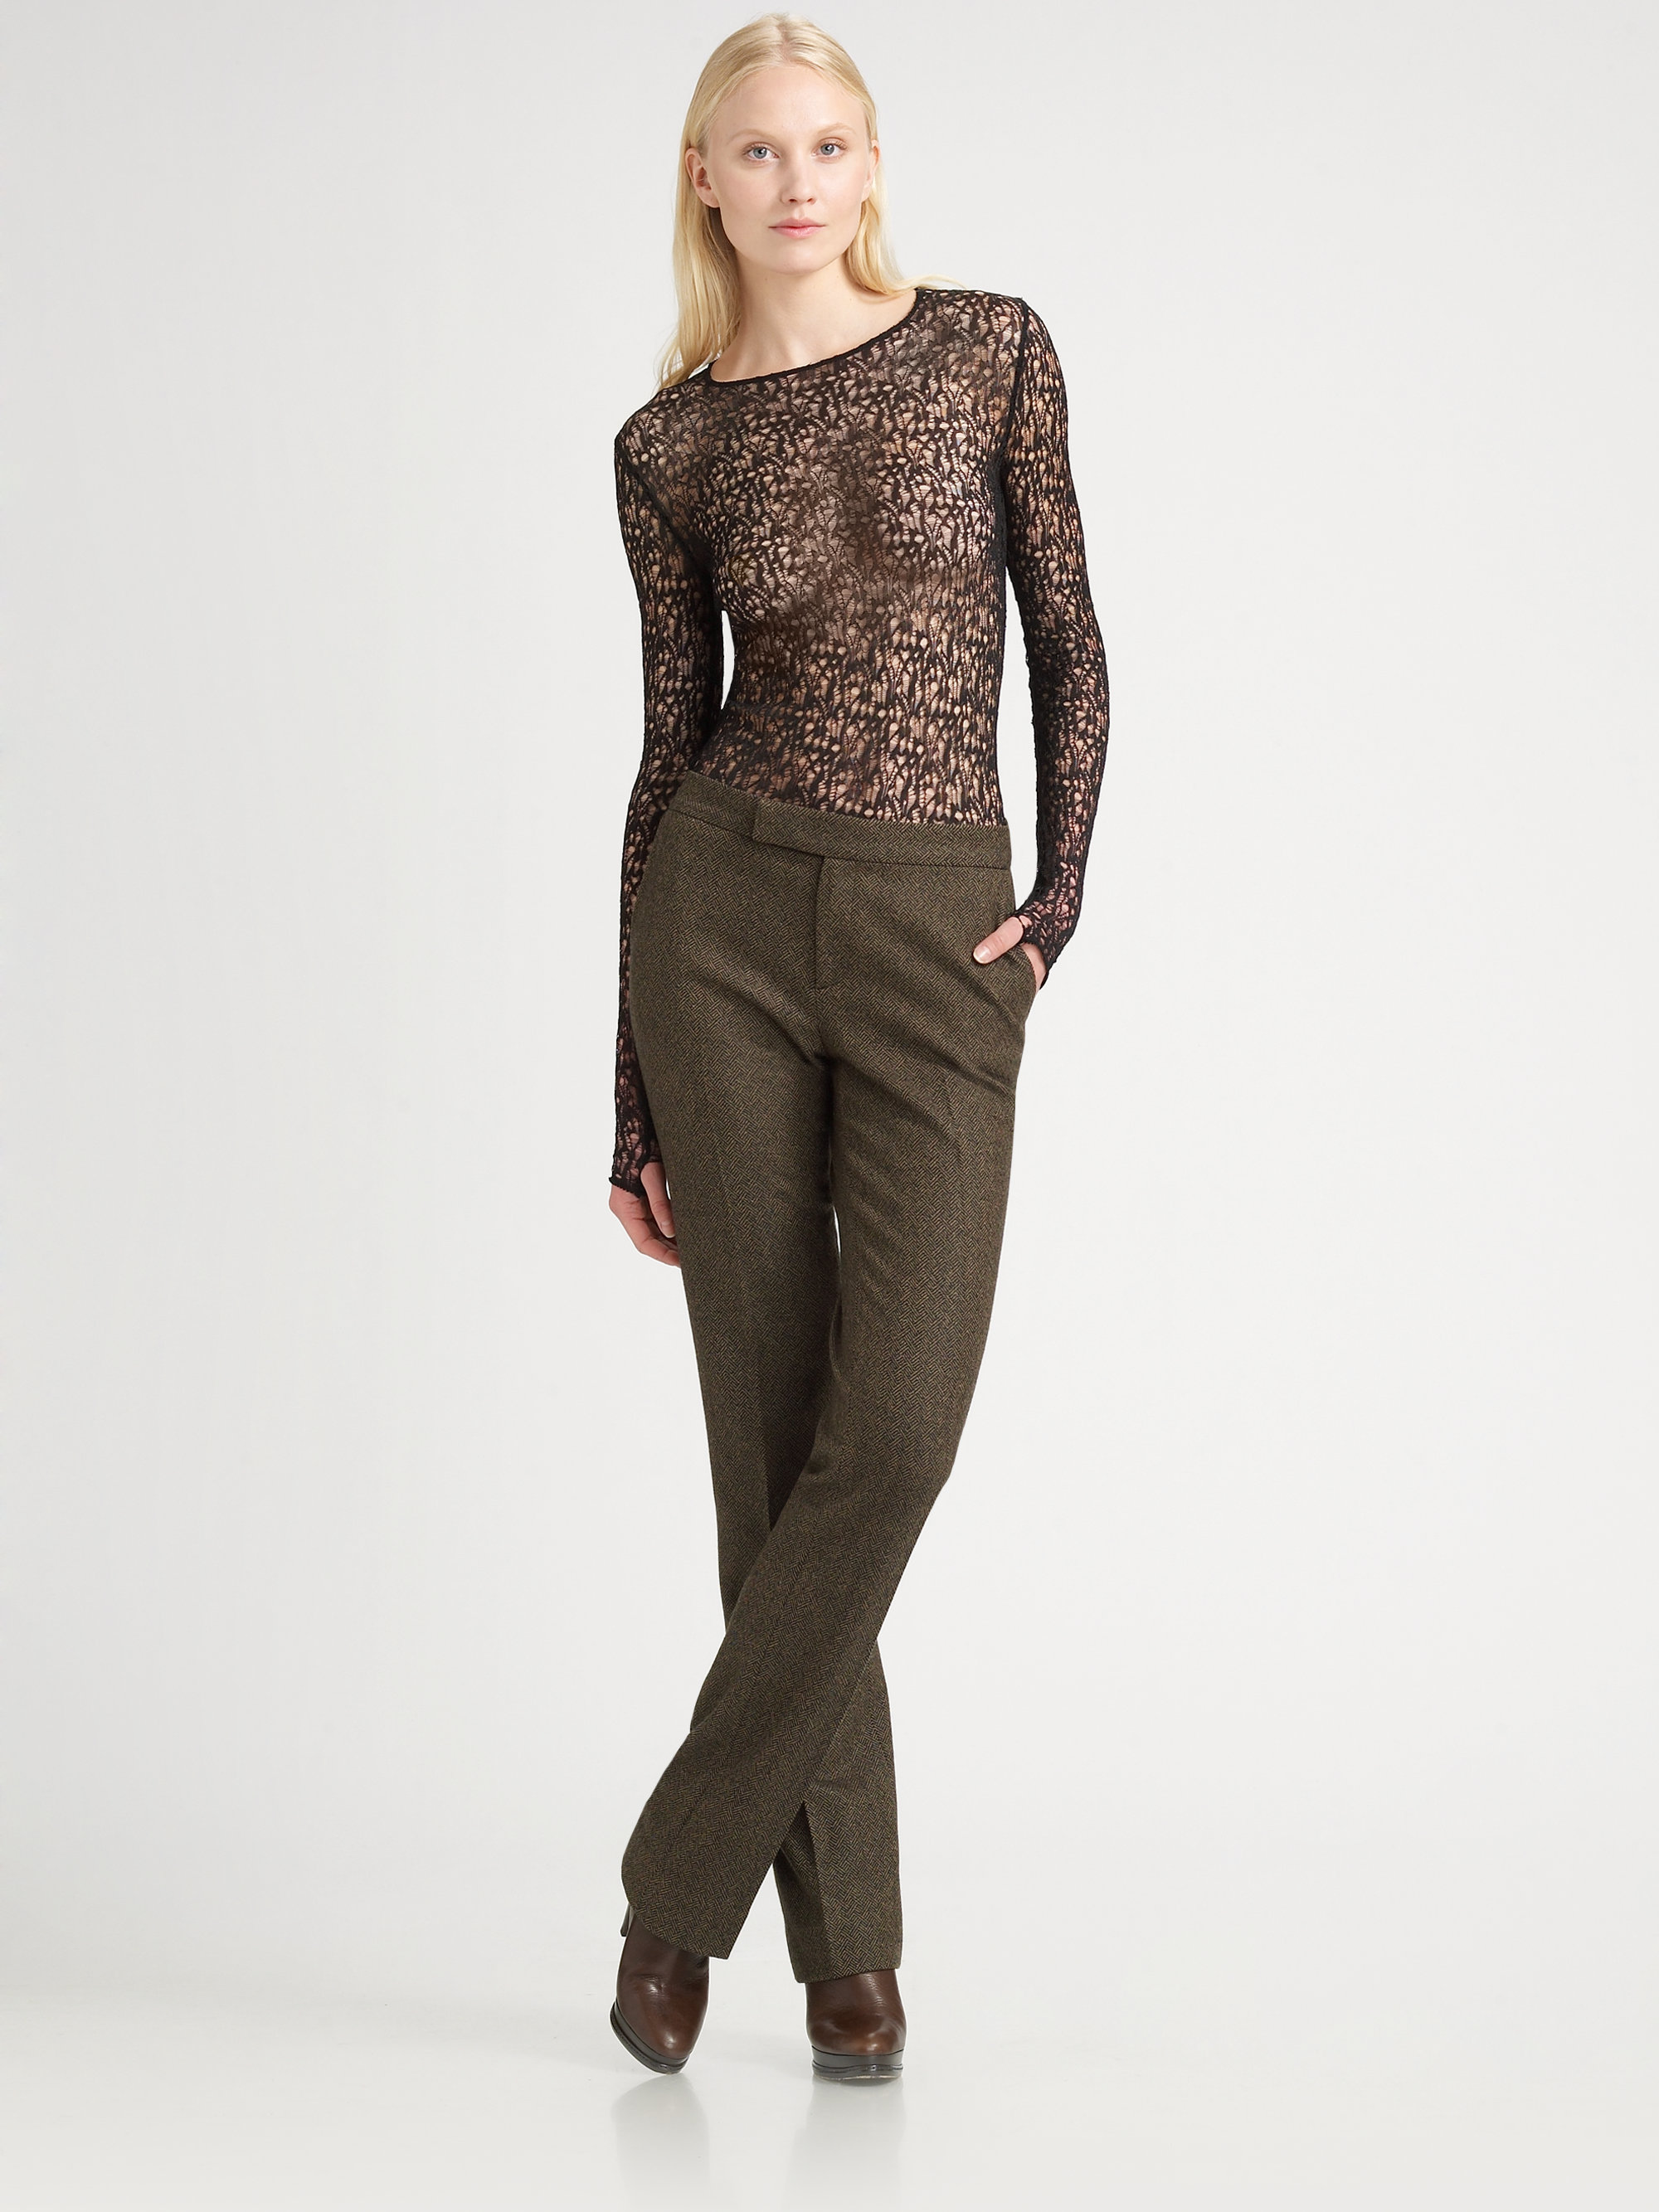 lyst ralph lauren collection wool cashmere tweed pants in brown. Black Bedroom Furniture Sets. Home Design Ideas